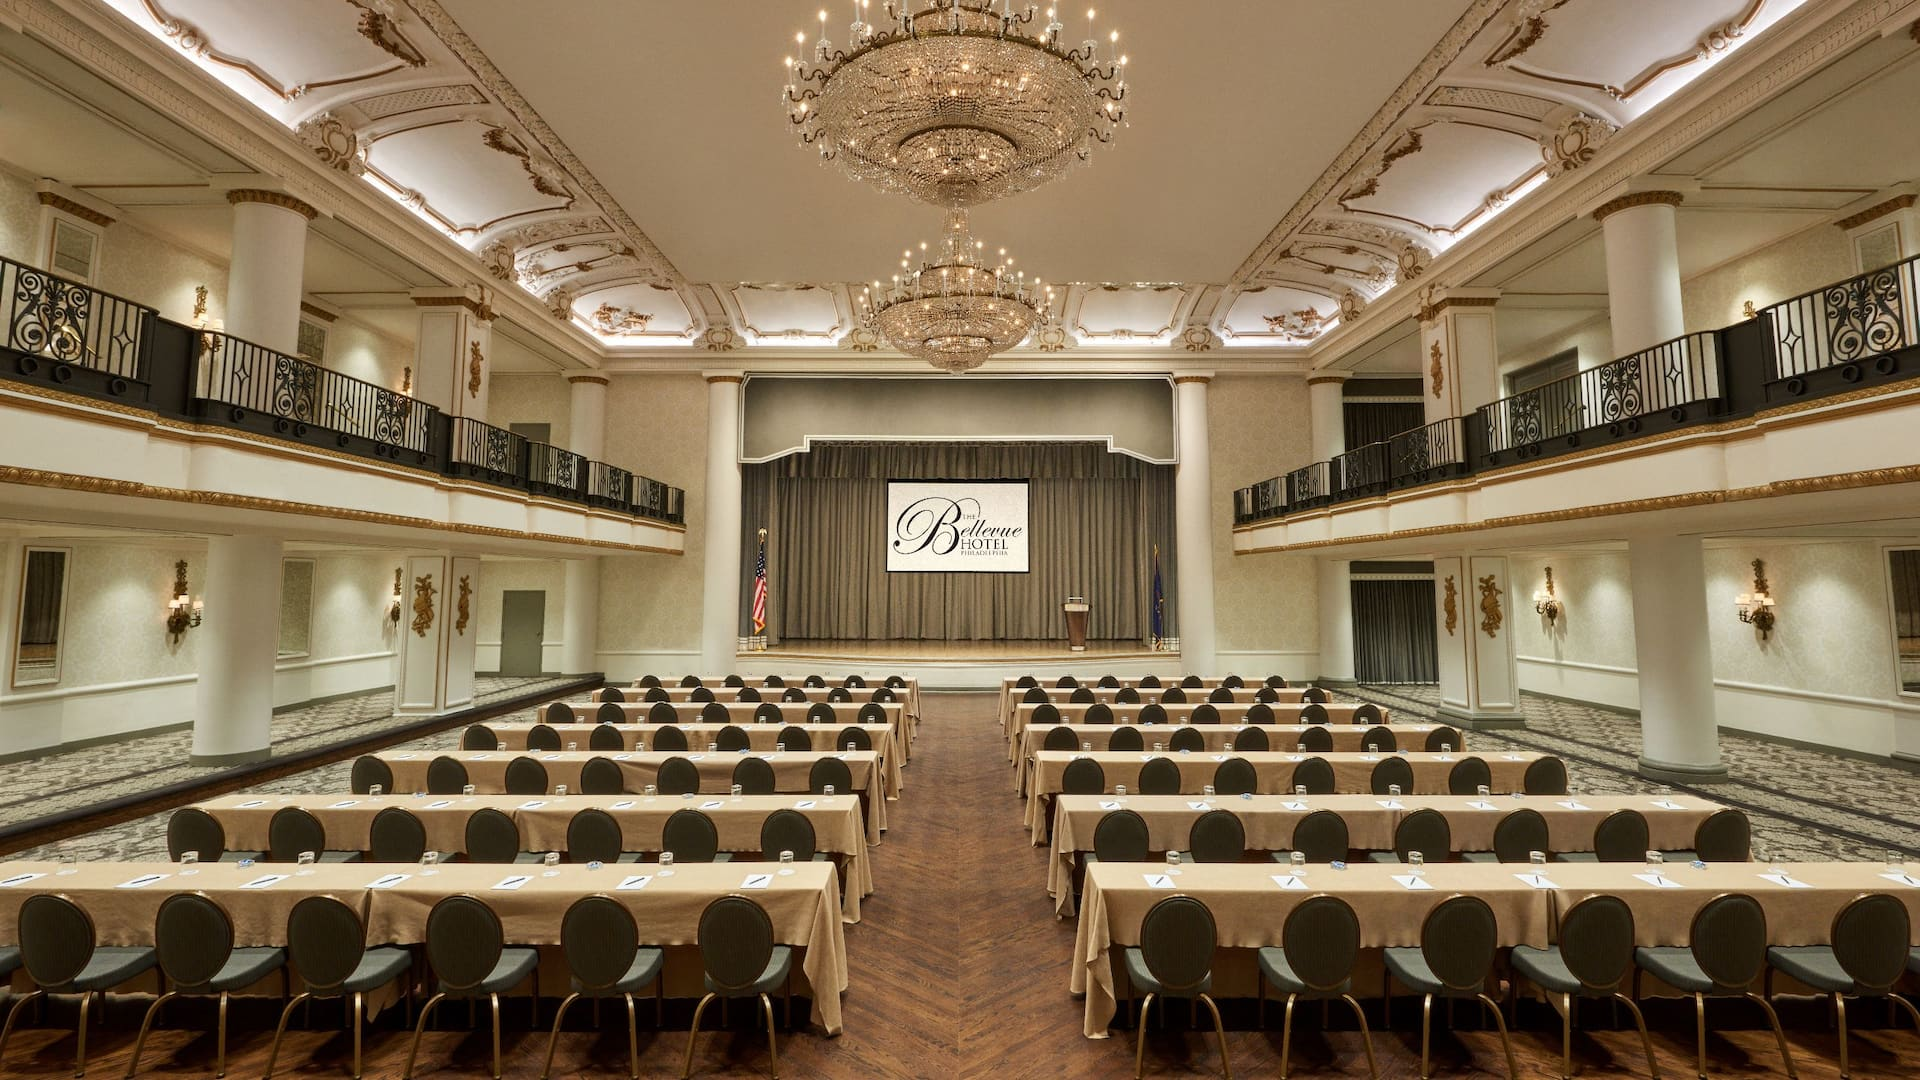 Conference venue at The Bellevue Hotel